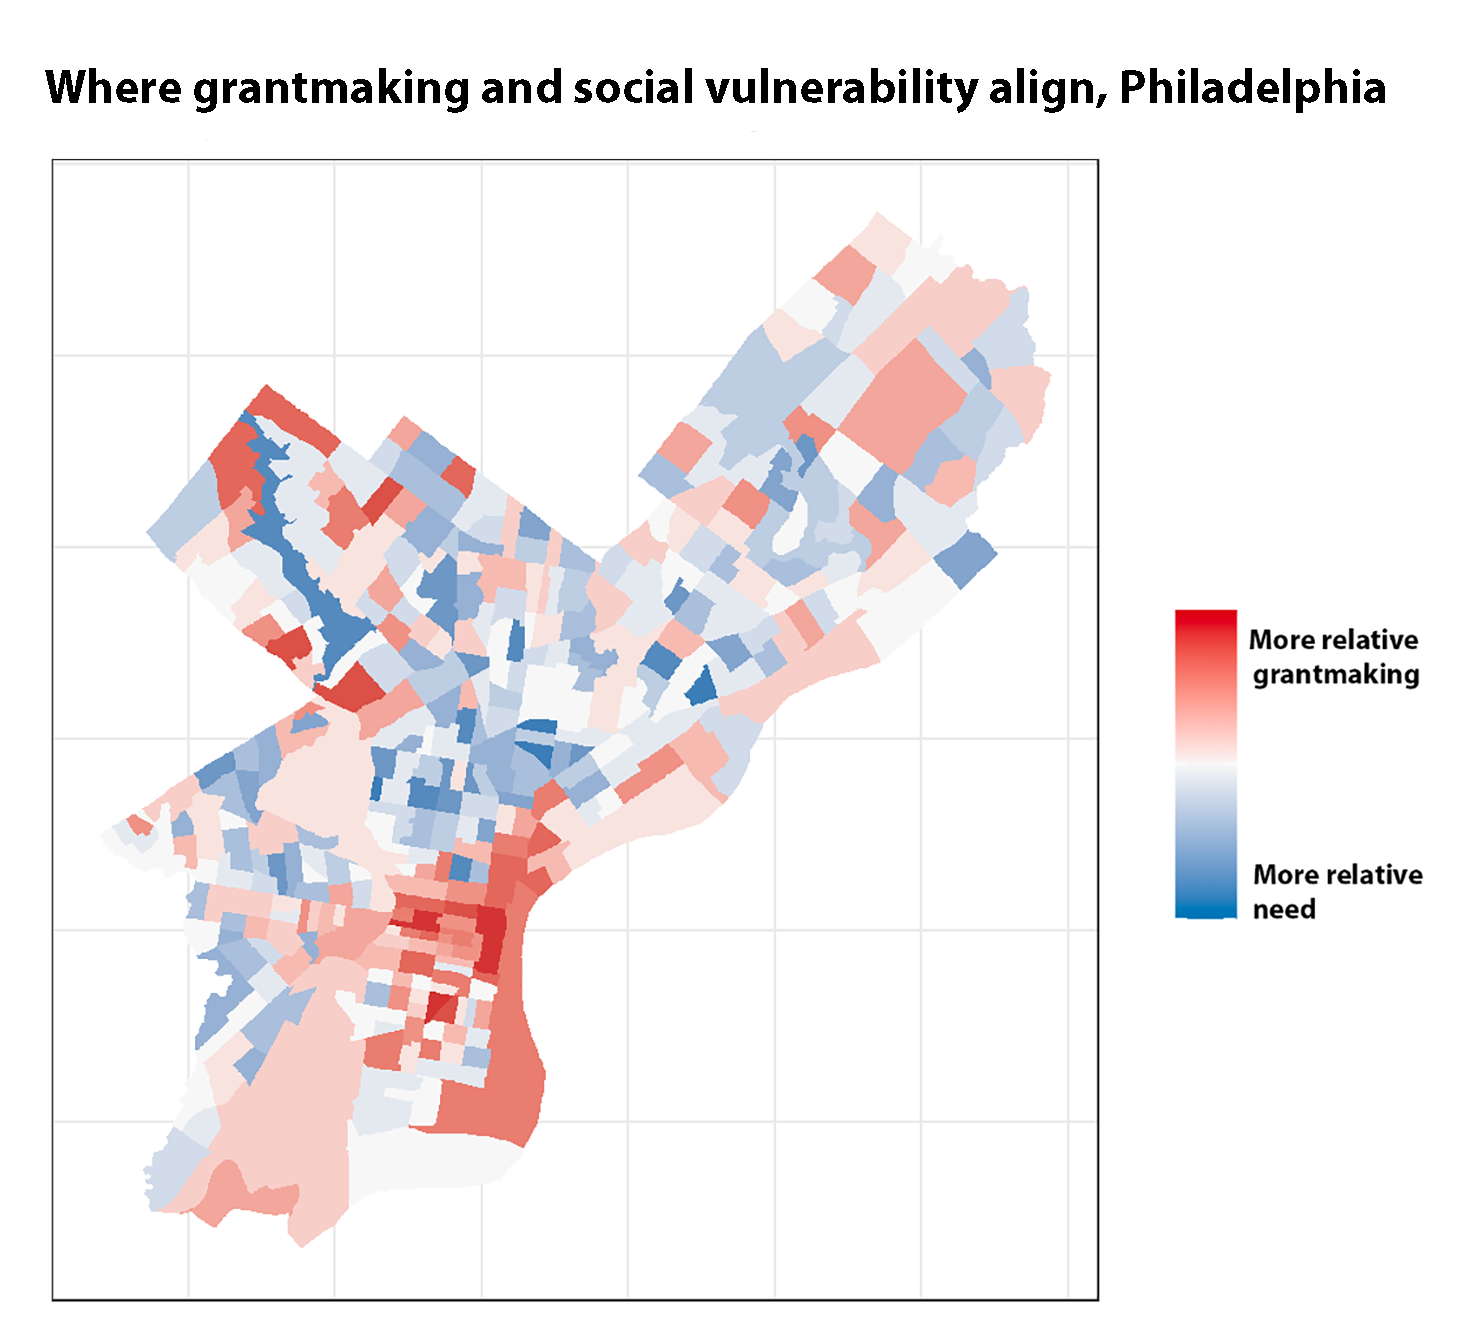 Where grantmaking and social vulnerabilty align, Philadelphia